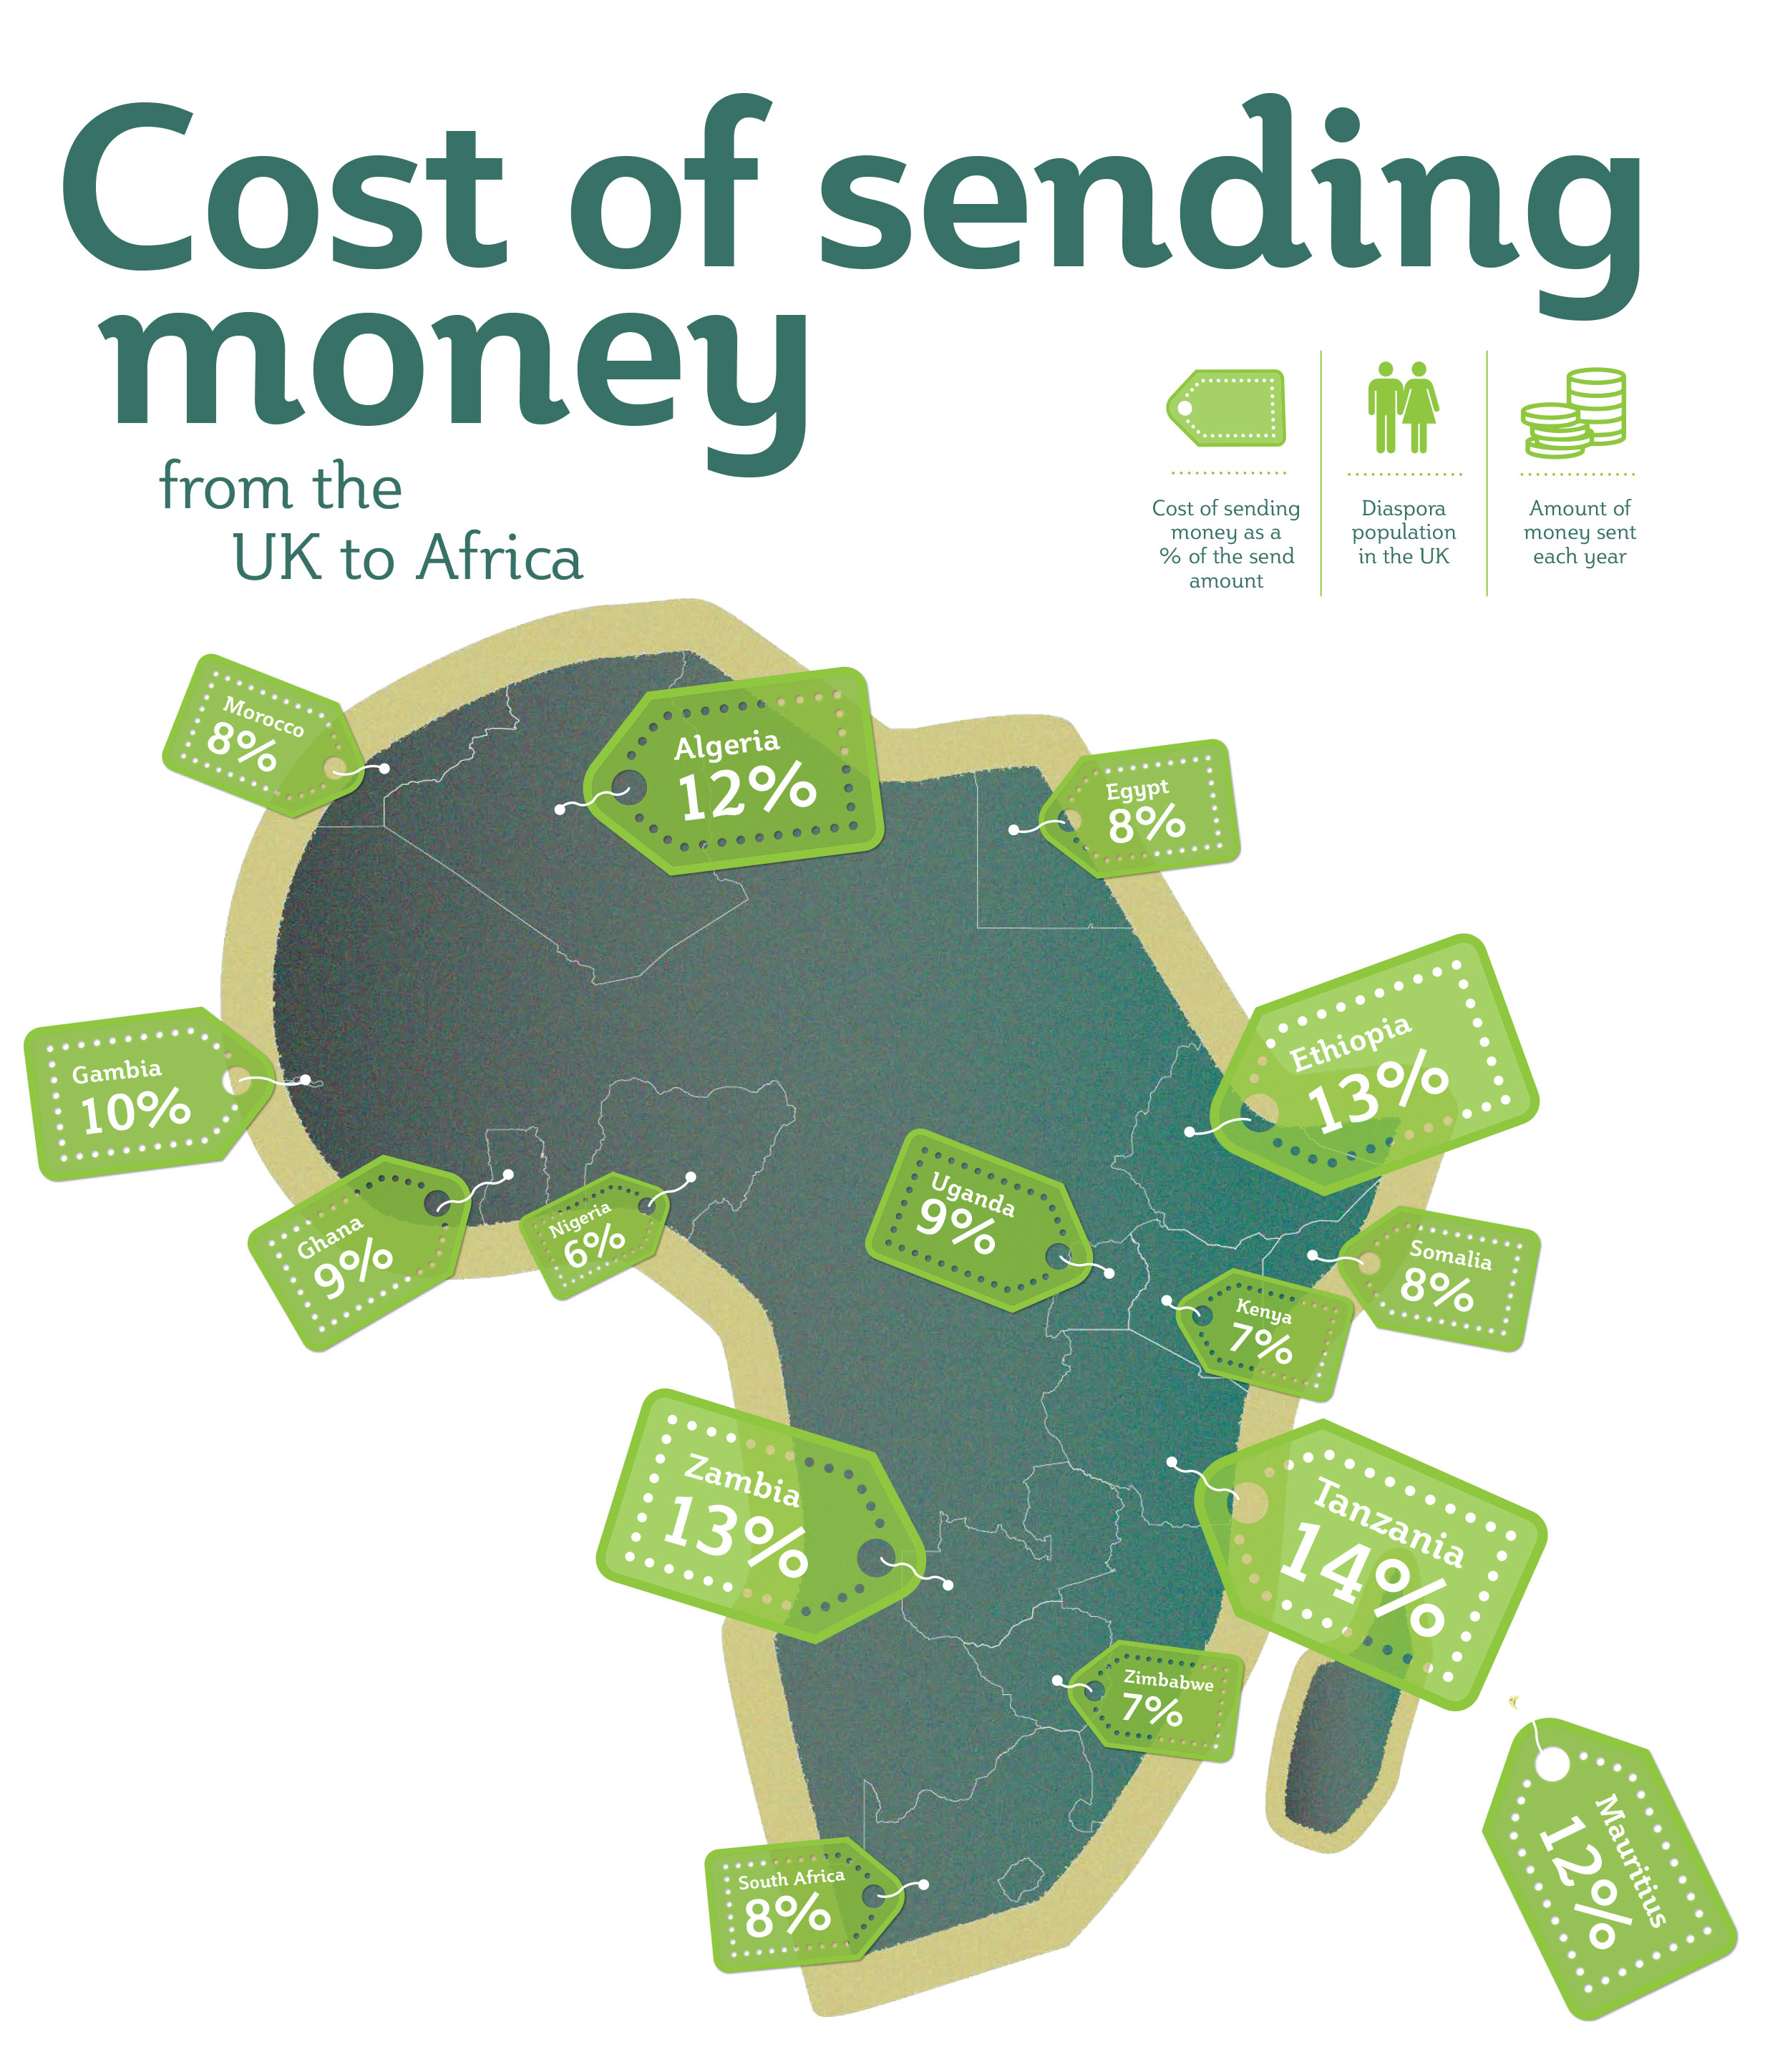 Africa: most expensive place to send money in the world